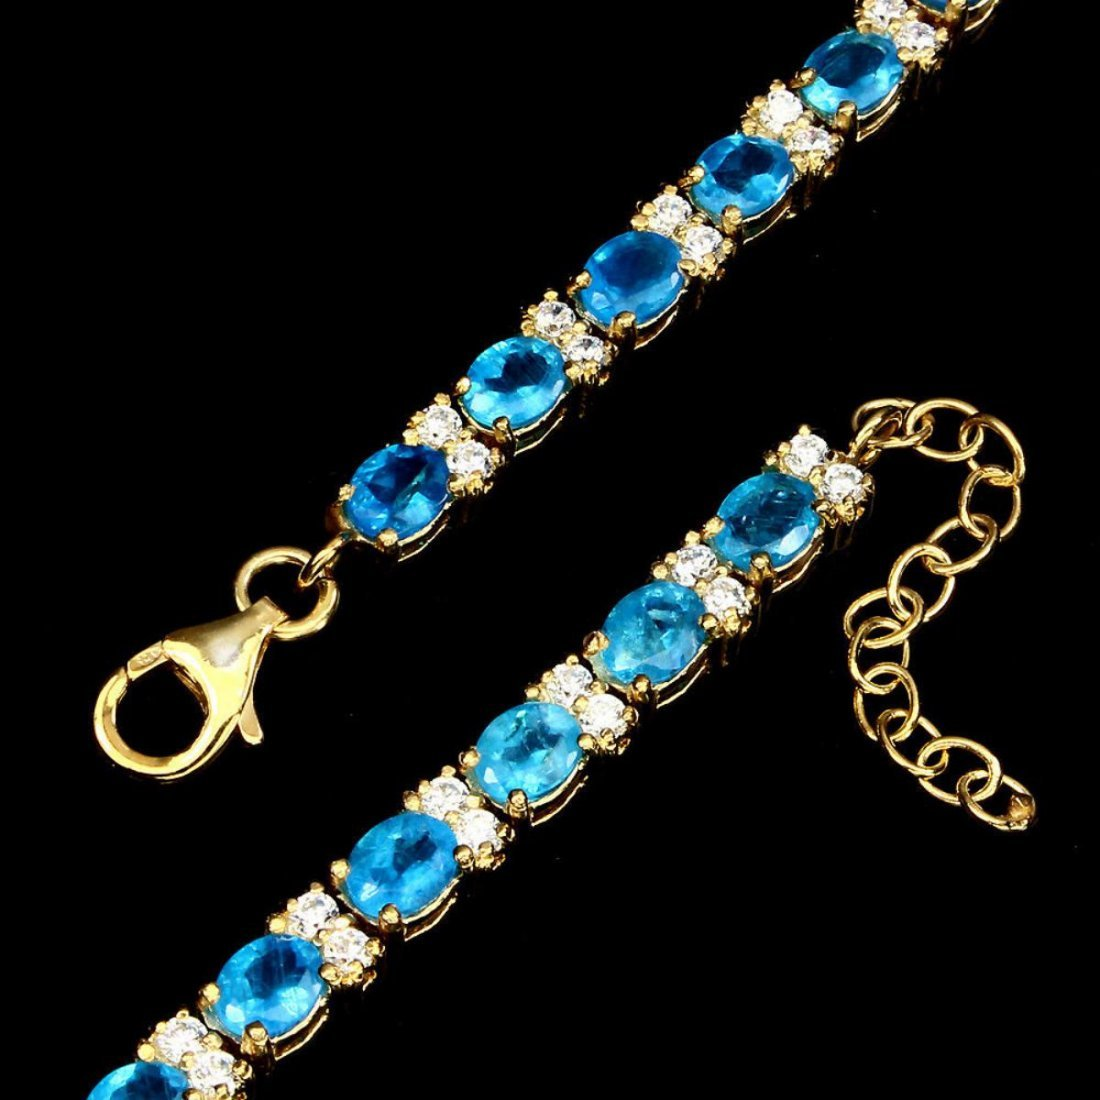 Natural  AAA Neon Blue Apatite 66.47 Ct Bracelet - 3